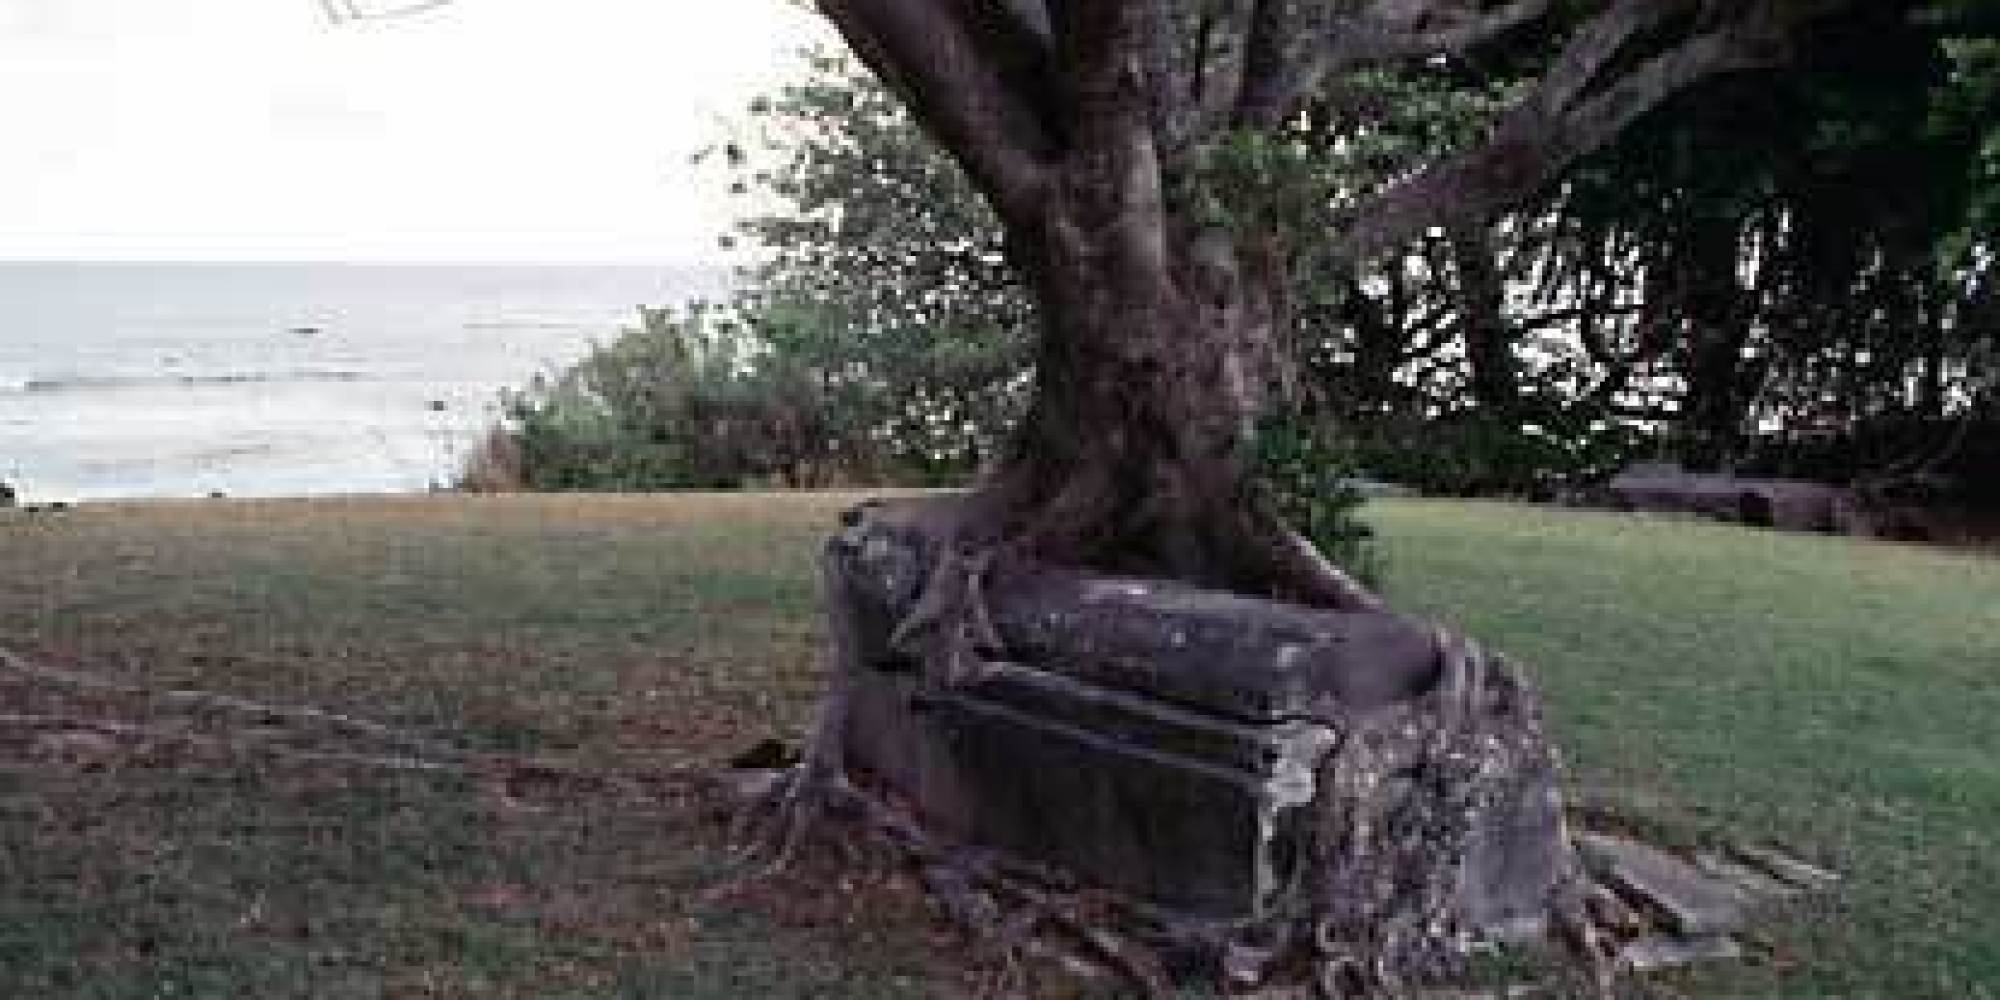 kalaupapa women The kalaupapa national historical park & guided mule tour is one that even seasoned travelers cherish, as one of their most memorable hawaii experiences join us for an amazing guided ride.